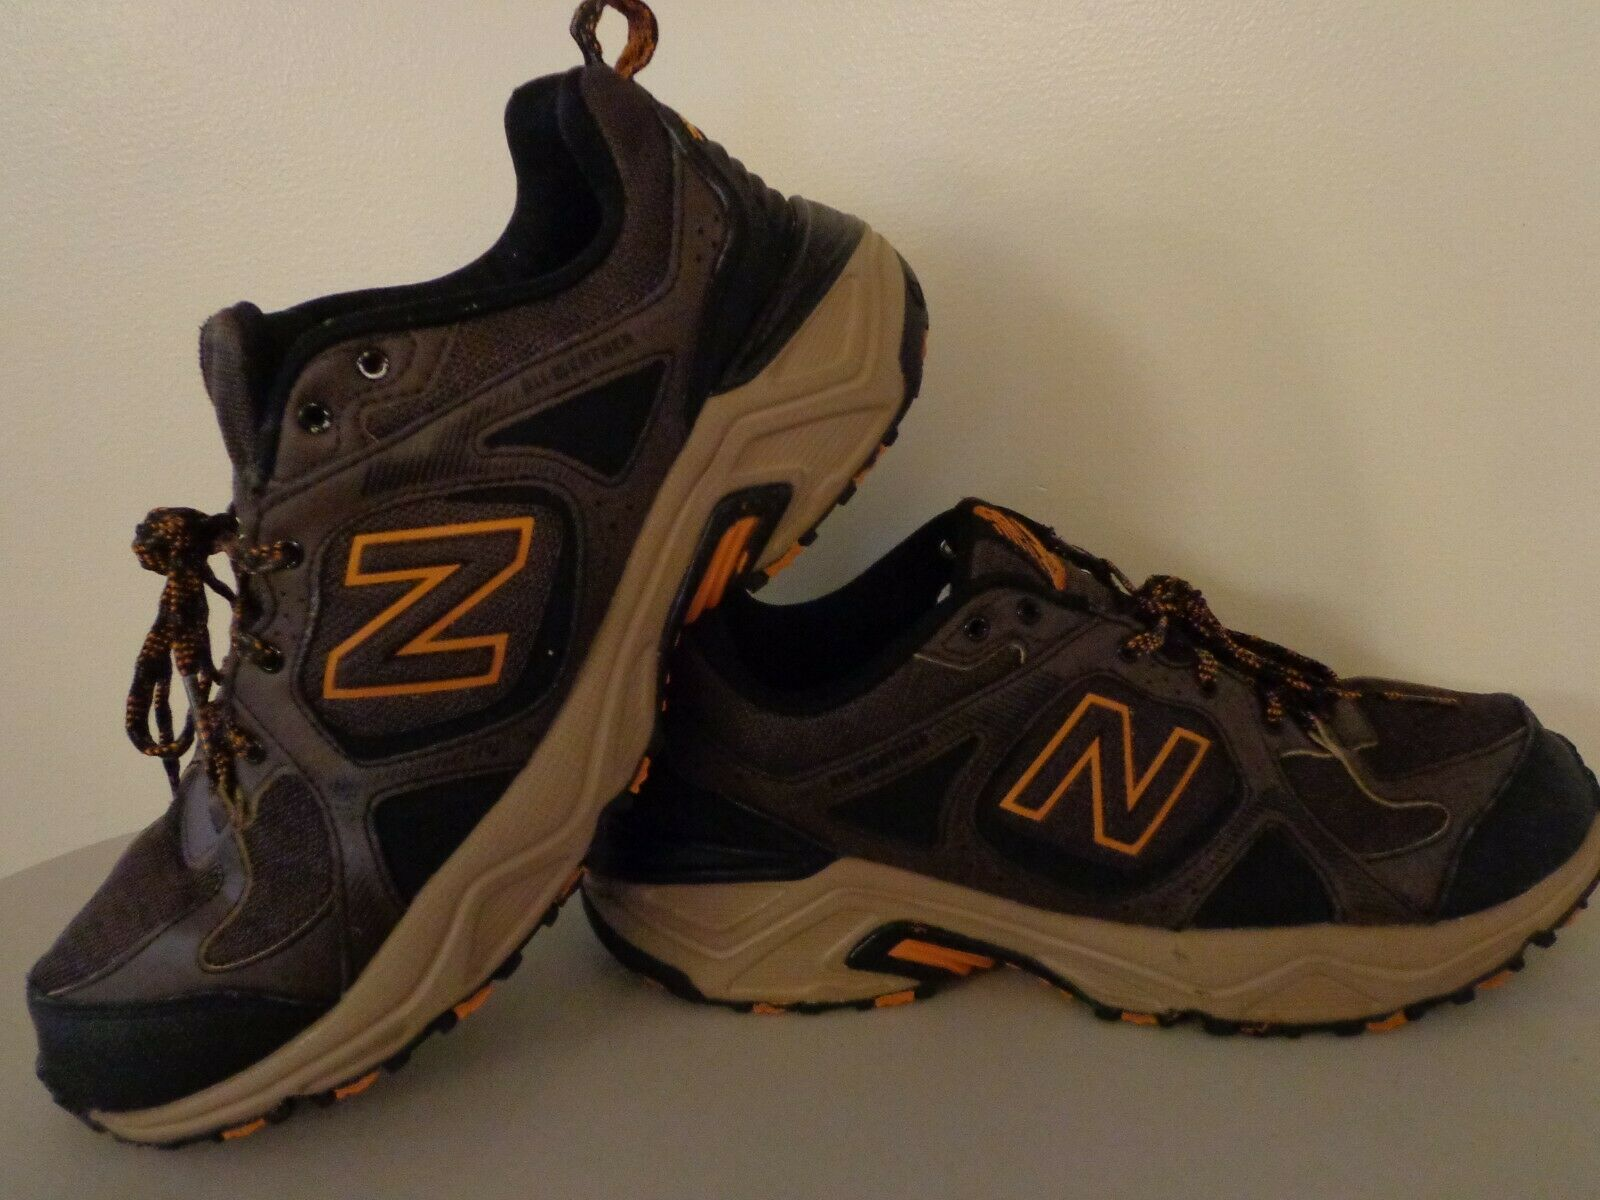 New Balance all Terrain all-weather comfort ride 481-v3 Men's shoes Size 12